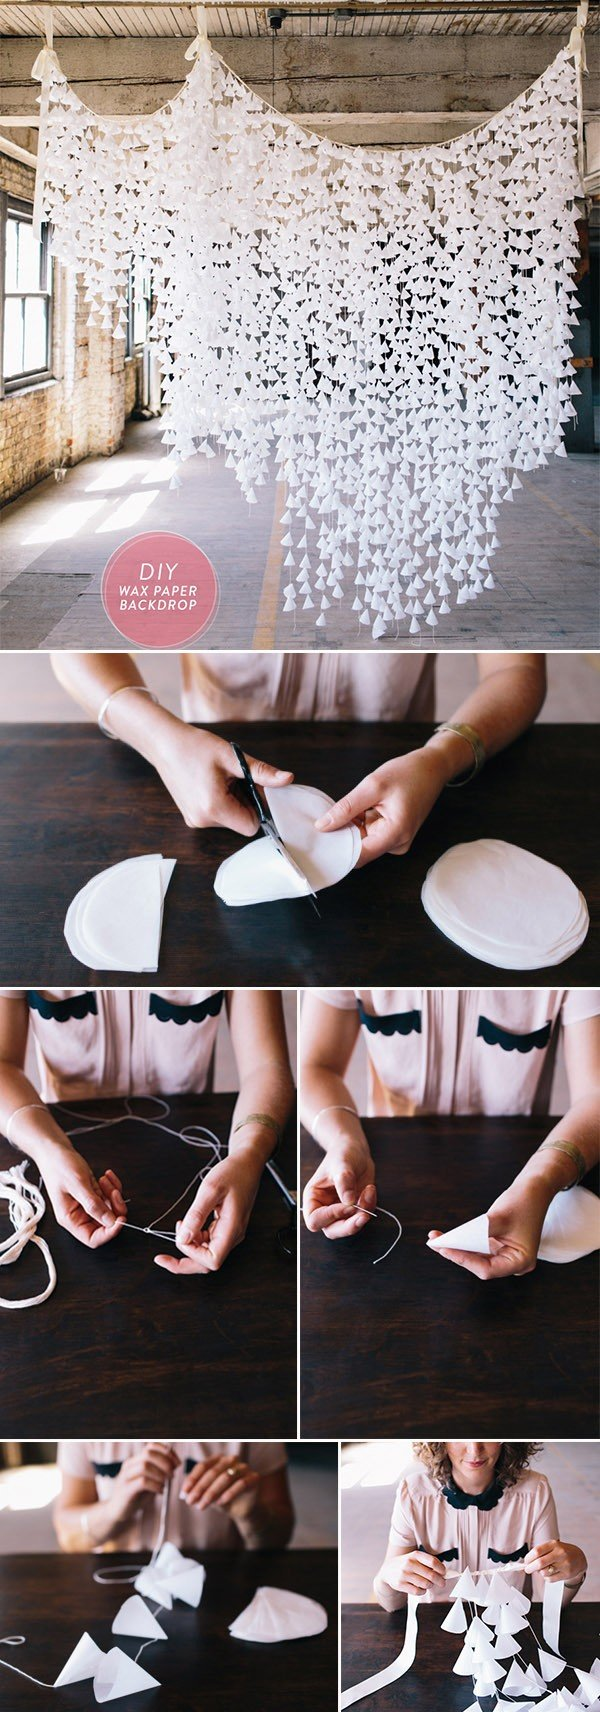 diy wax paper wedding backdrop ideas